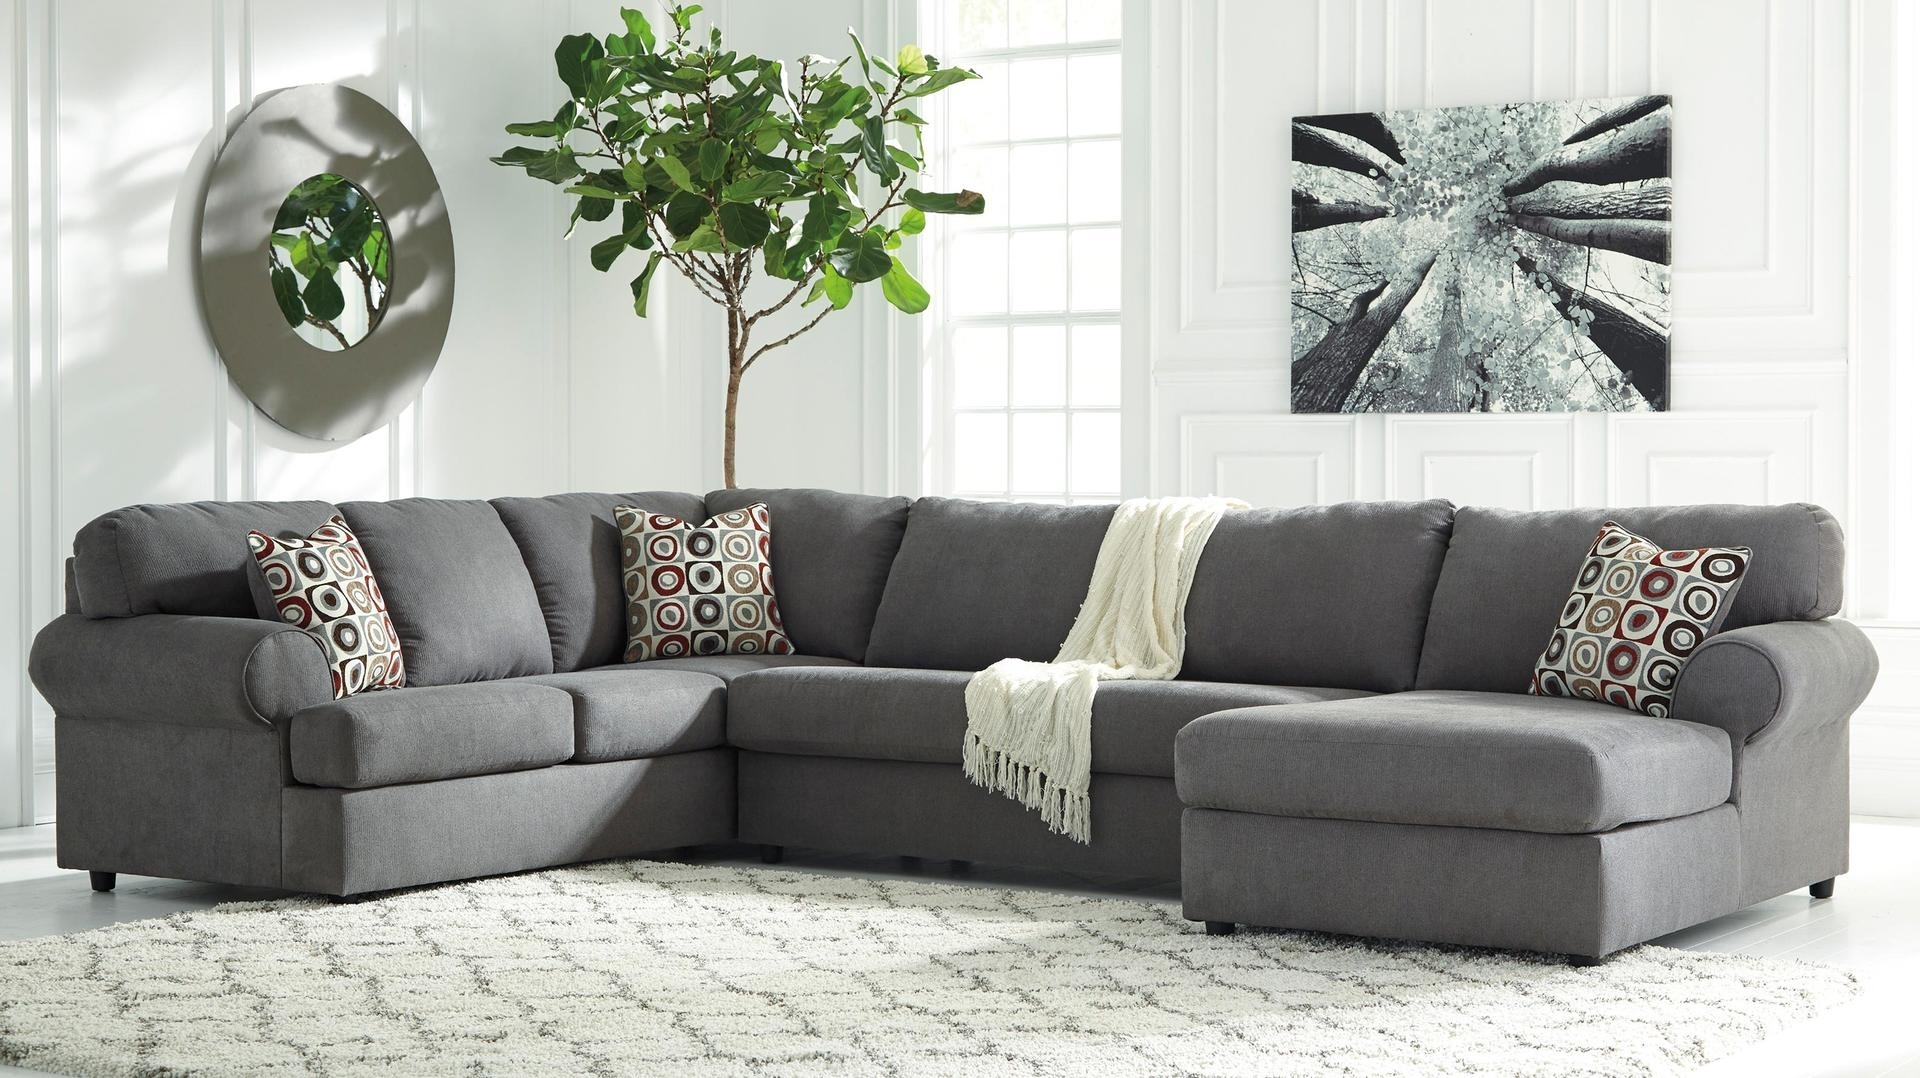 Piece Sectional Sofas Leather Sofa With Chaise Cover Couch Covers Pertaining To Gordon 3 Piece Sectionals With Raf Chaise (Image 18 of 25)